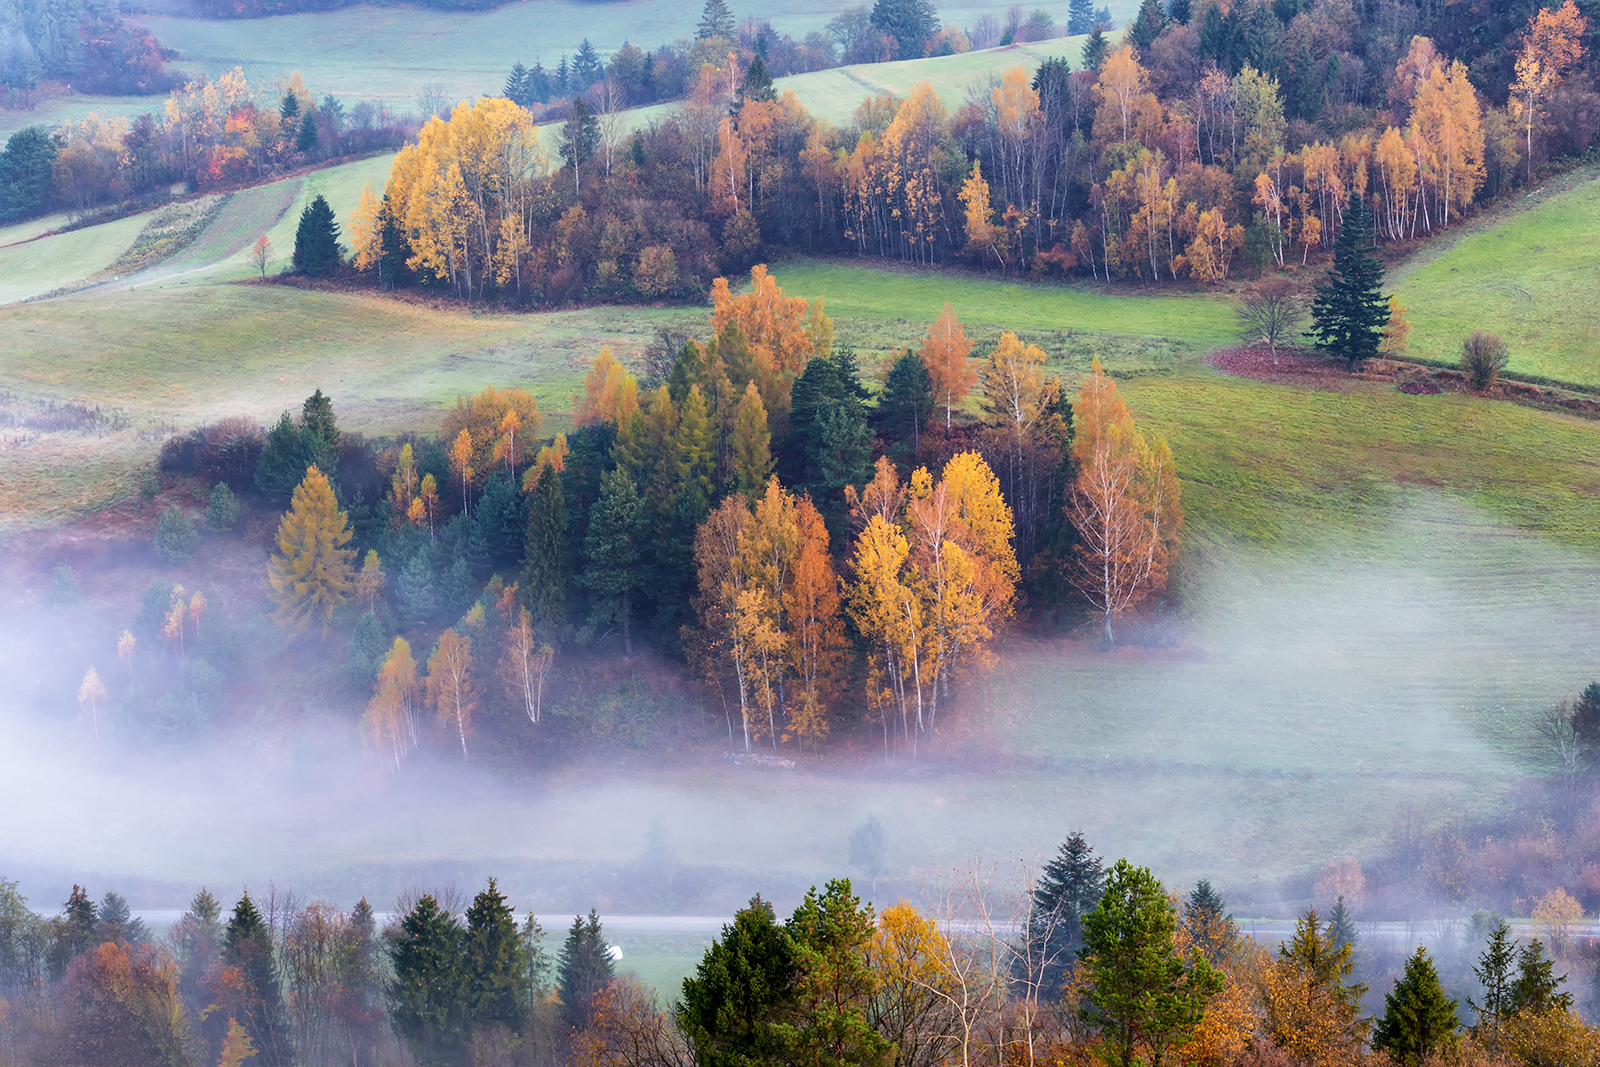 pieniny, national park, slovakia, autumn, threes